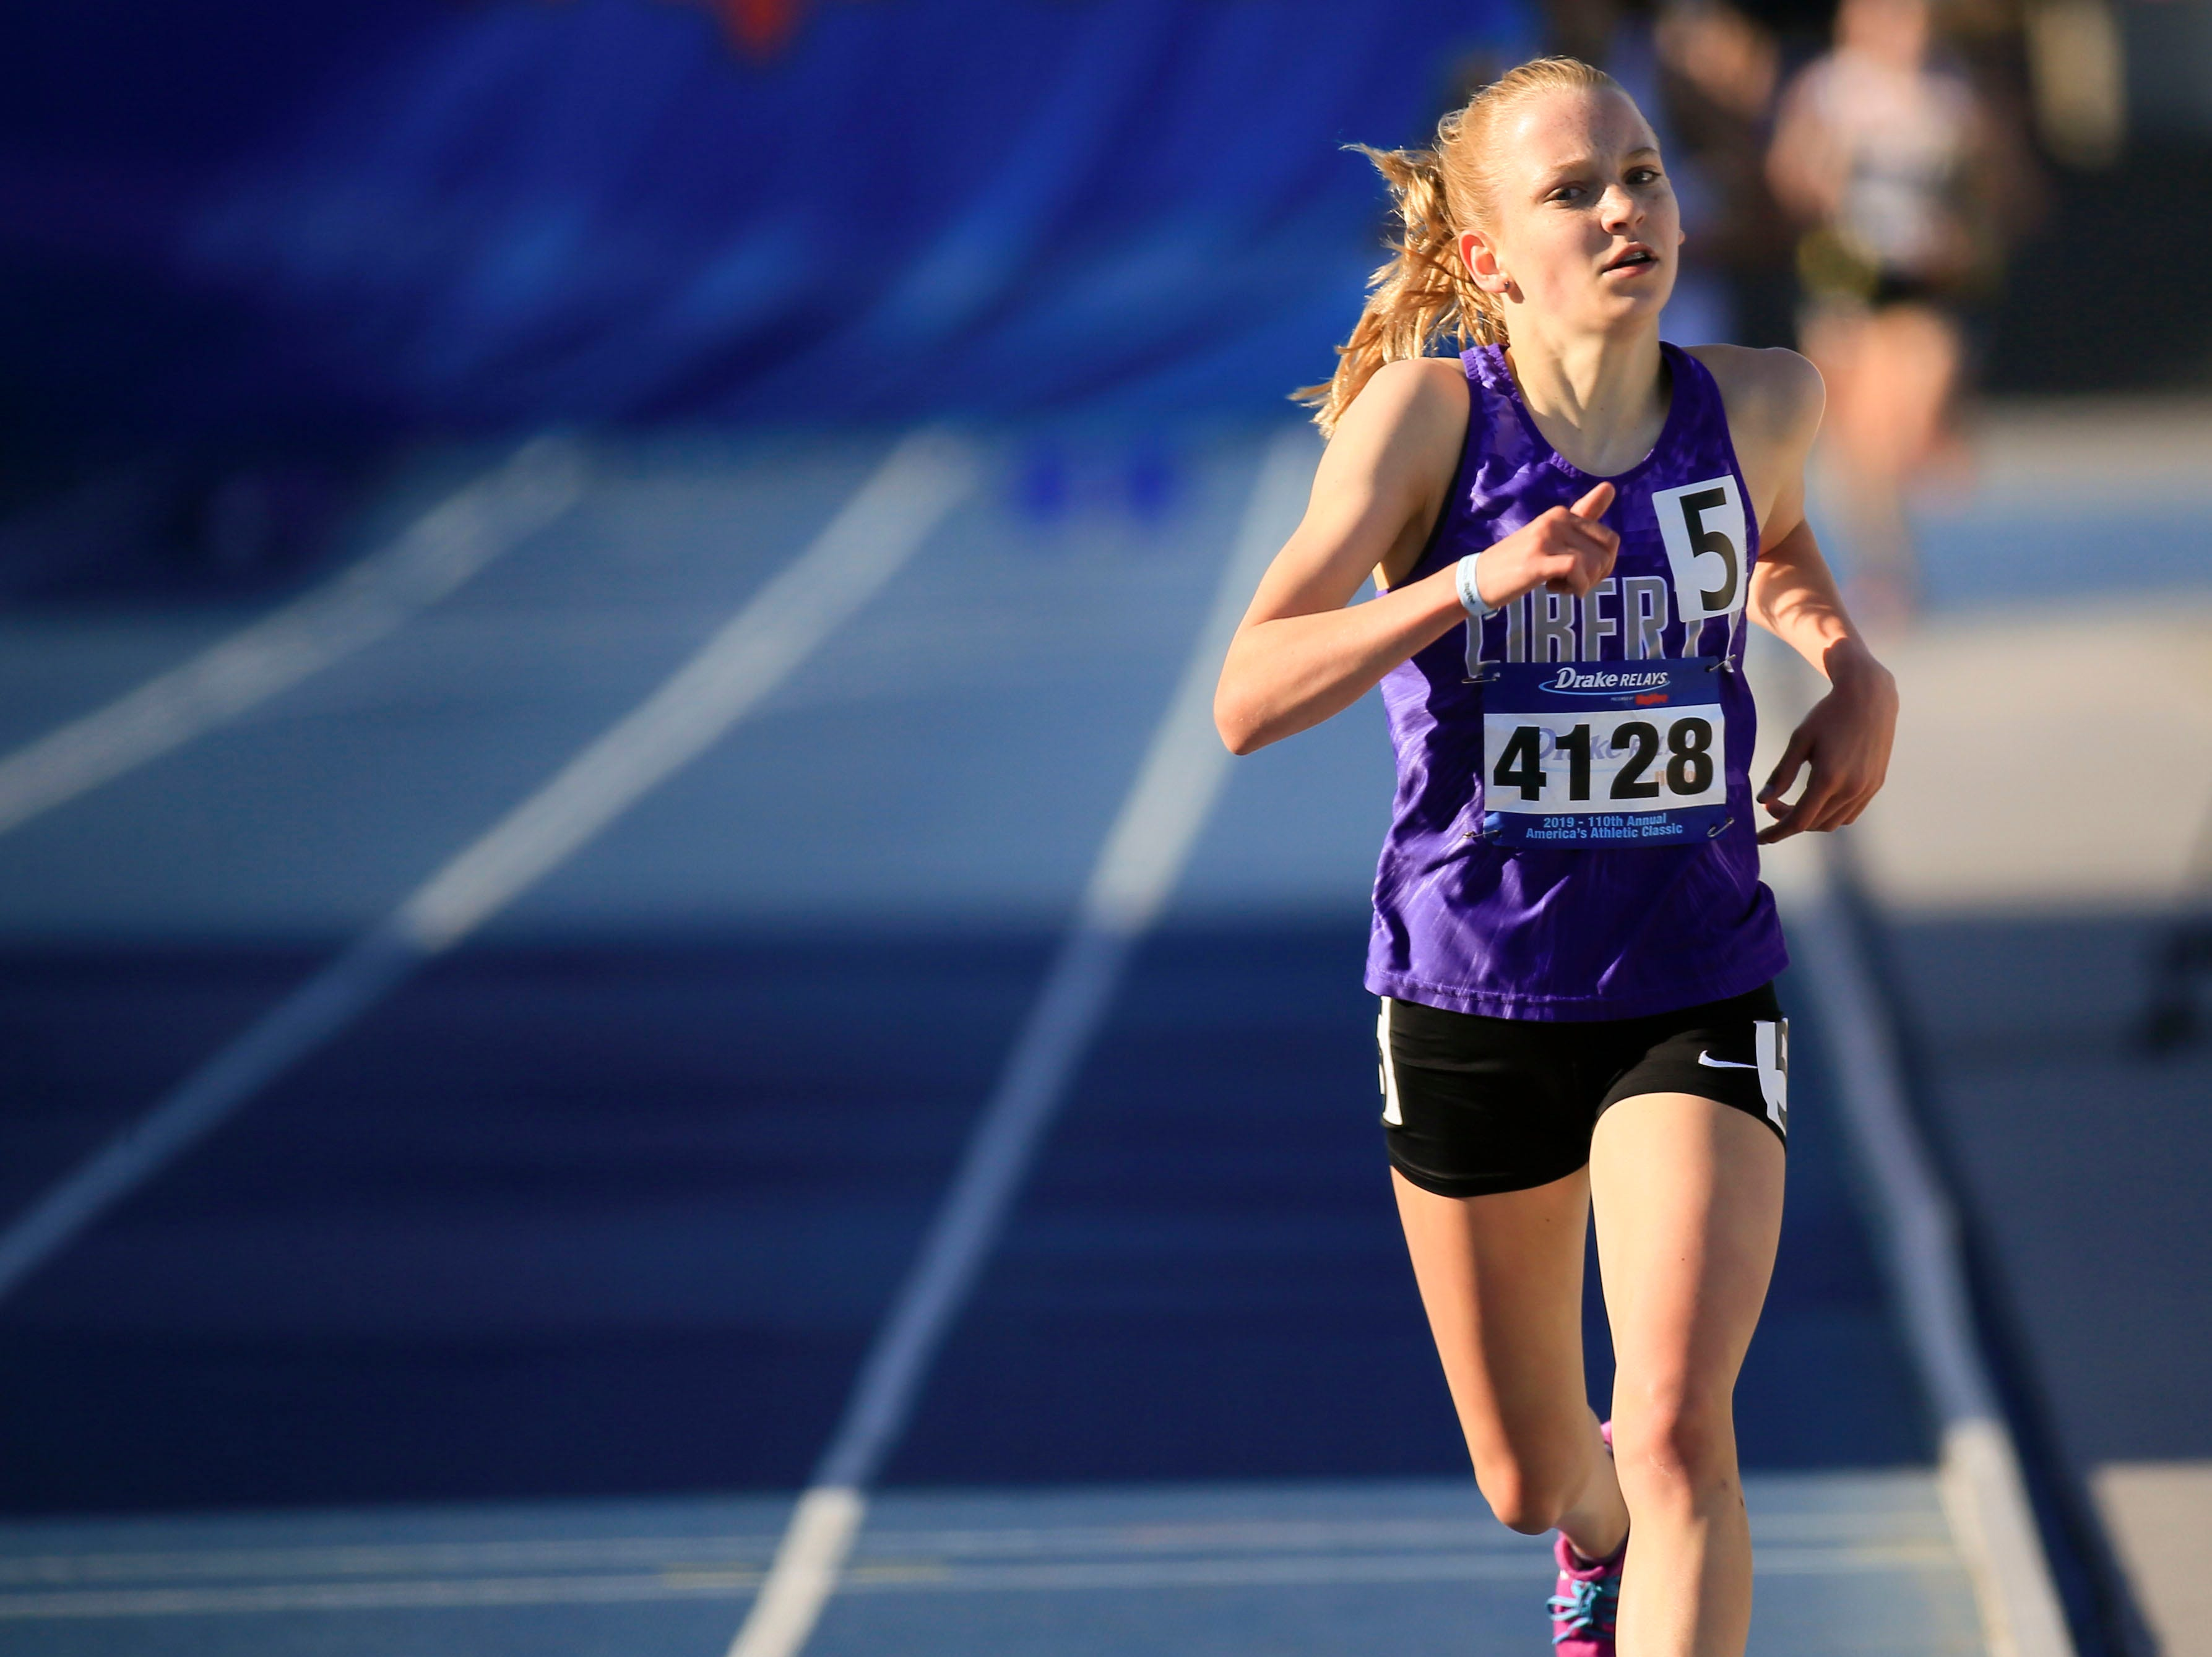 Introducing the Des Moines Register's 2019 All-Iowa girls' track-and-field team